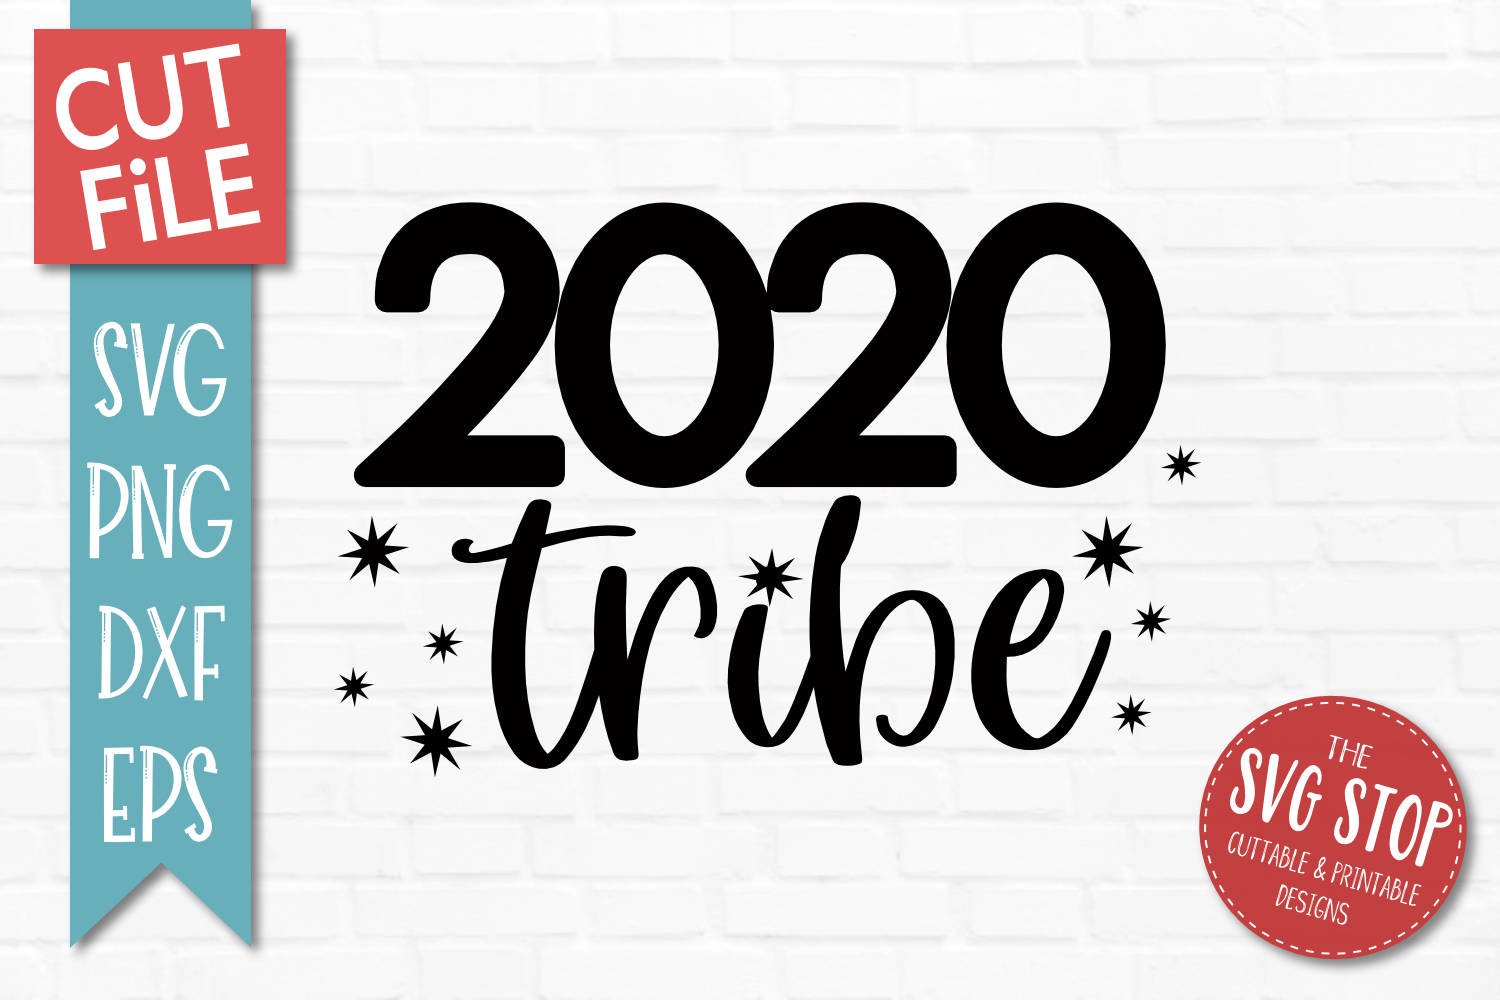 2020 Tribe New Years Eve SVG, PNG, DXF, EPS example image 1